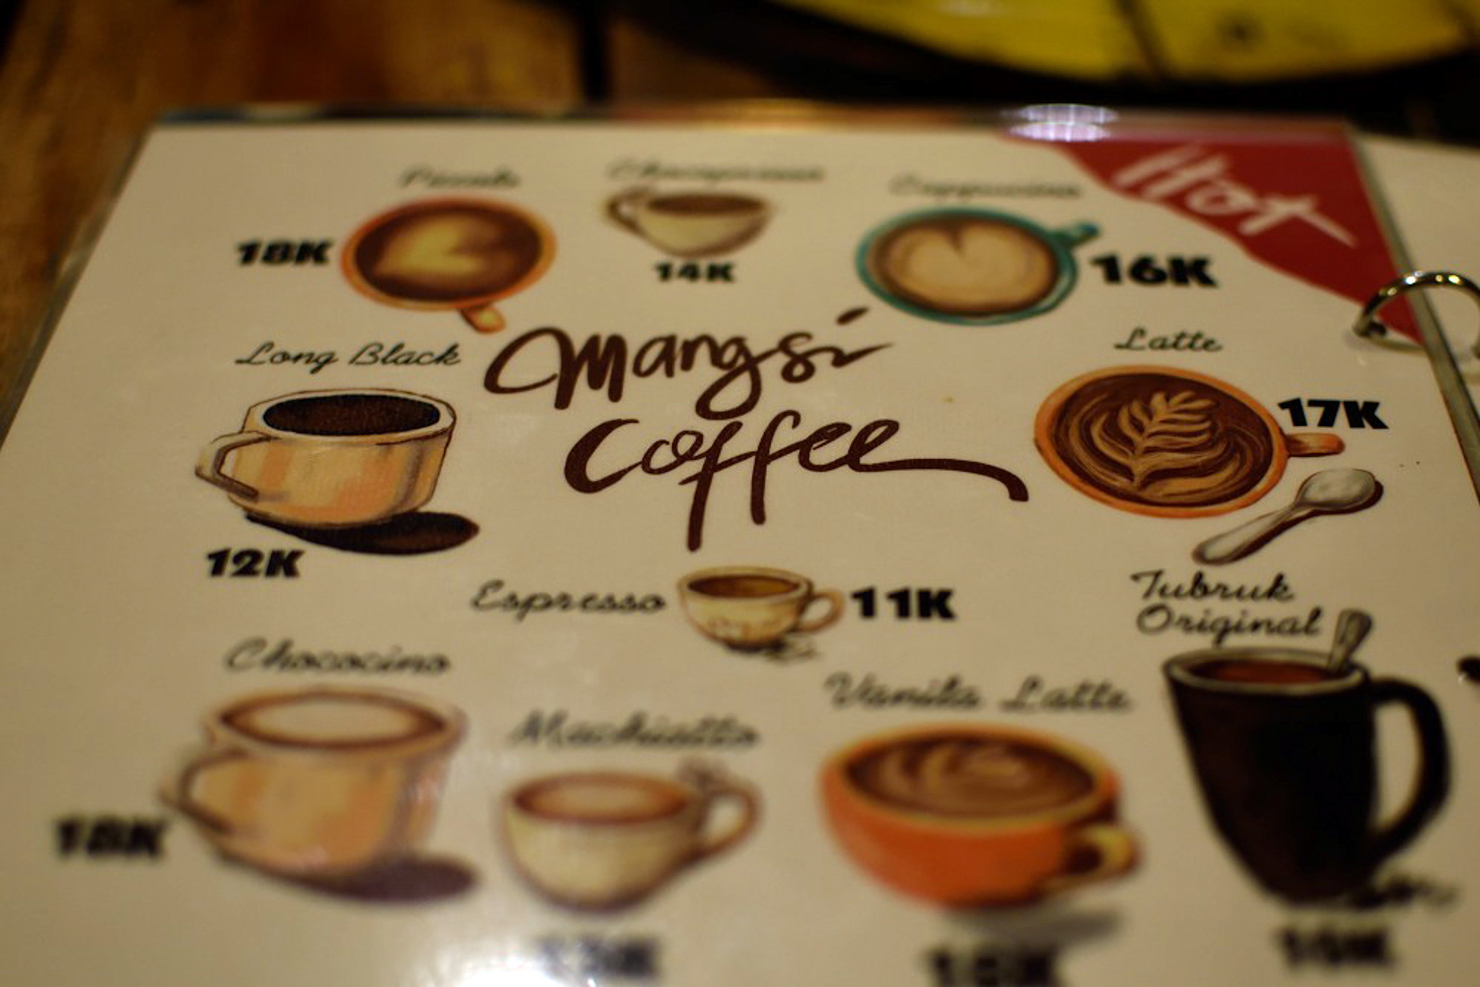 Coffee Art Jakarta On Bali Mangsi Serves Indonesian Coffee With Global Appeal